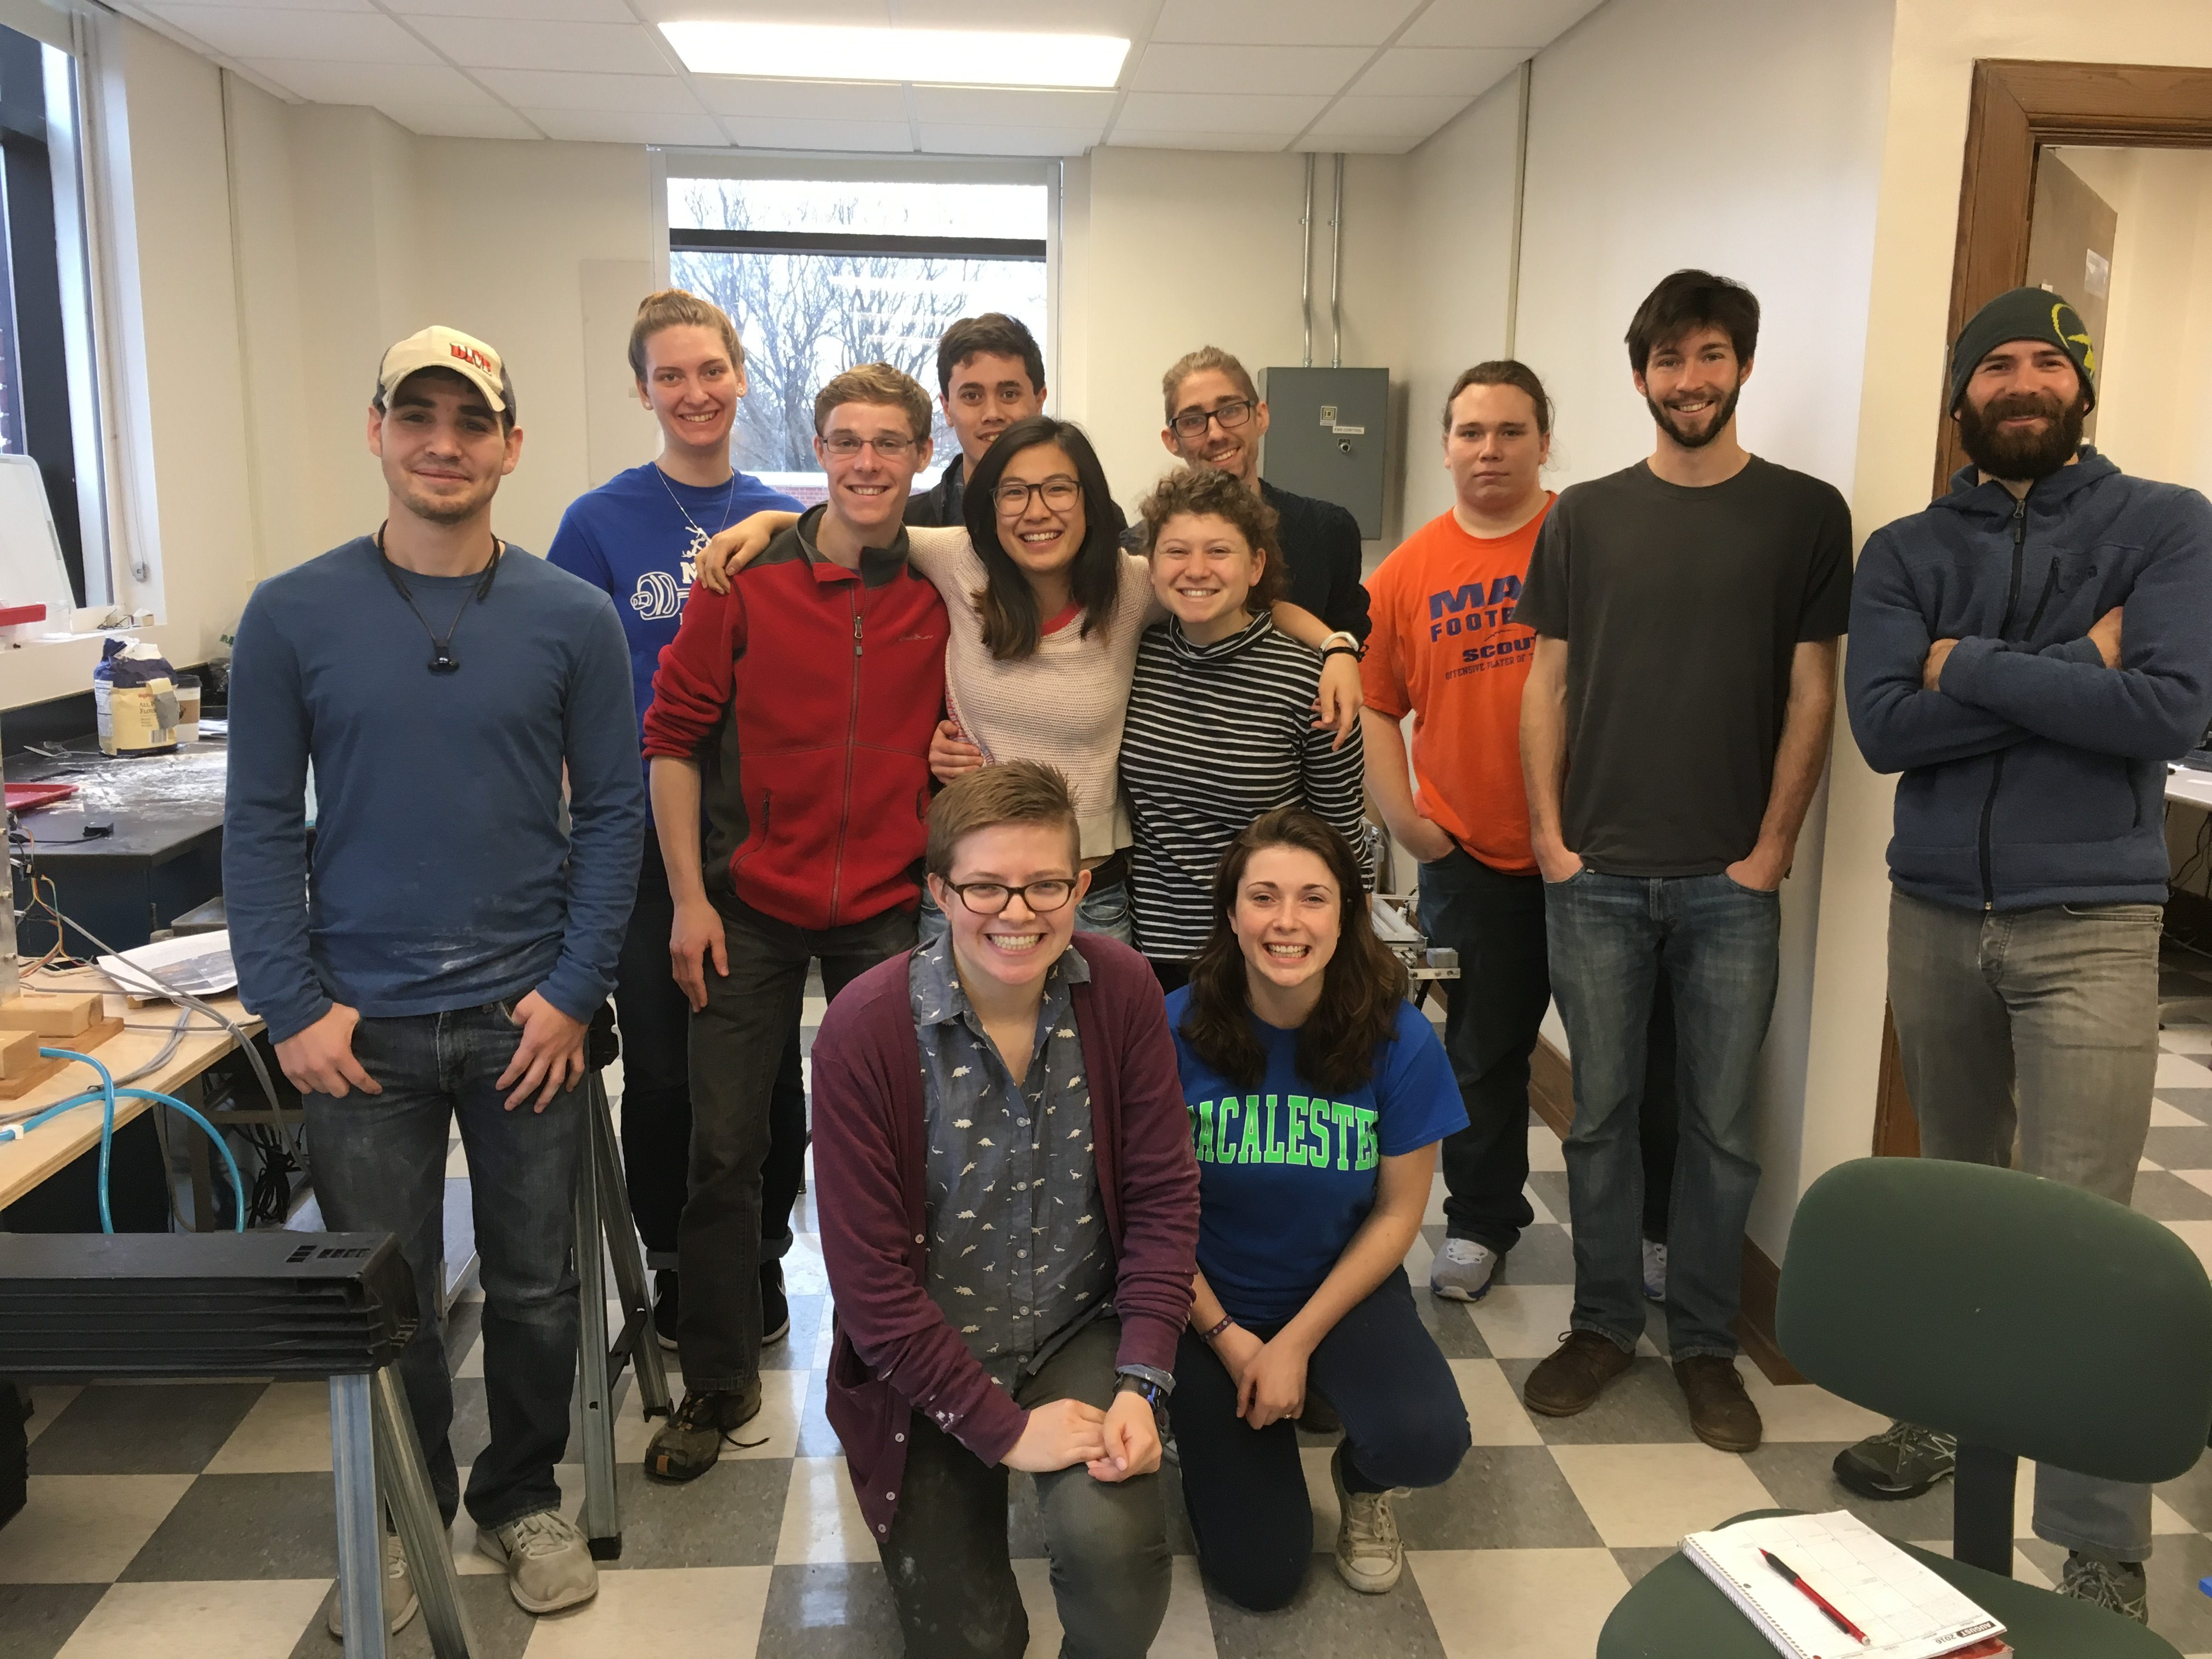 Zach and Jeremy with Dr. Chapman and the Mac Structure class at the end of a long day of experiments.